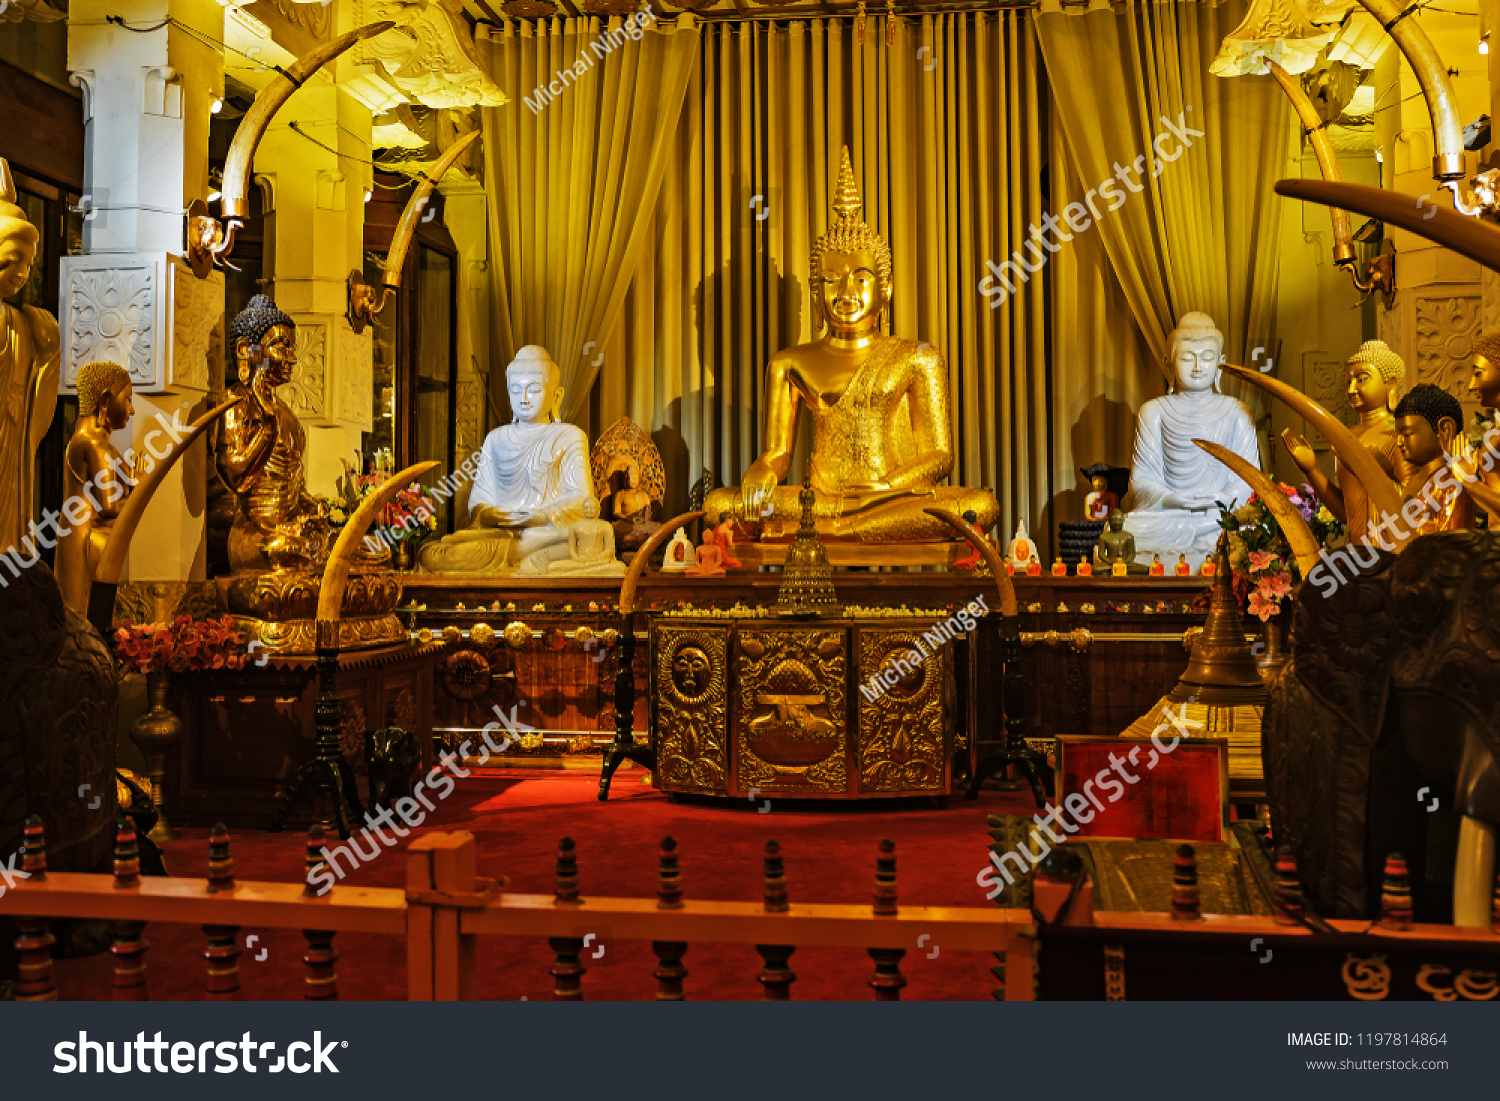 statues  in the tample Buddha's Tooth, Sri Lanka